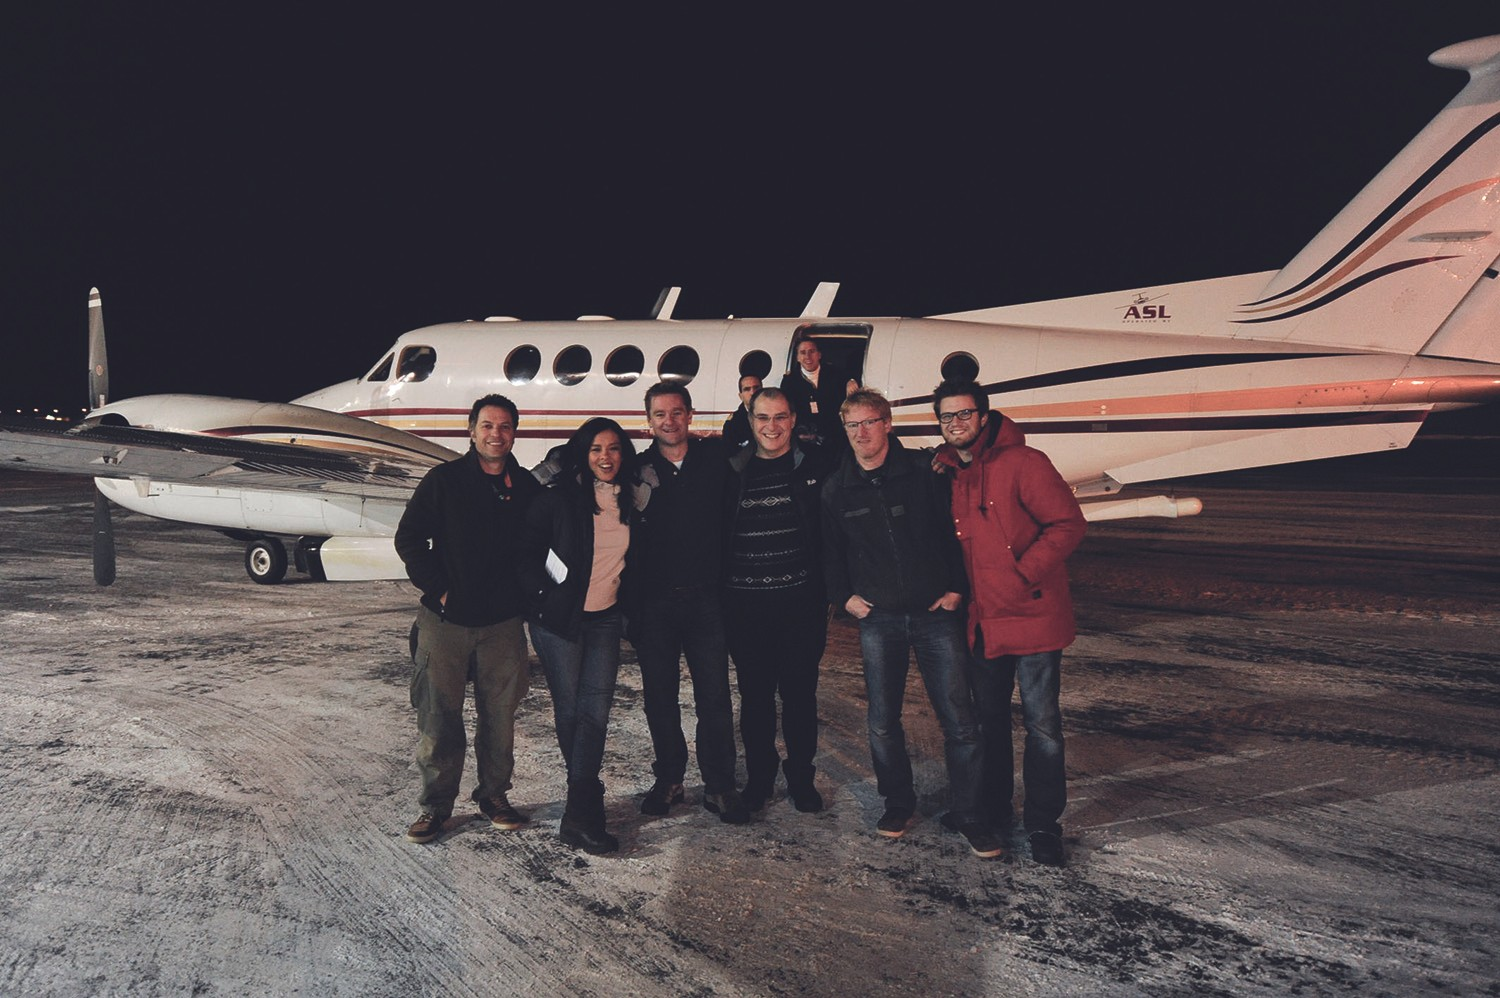 Liz with the Stargazing LIVE team in 2014 just before boarding the plane to go aurora hunting. Credit: Liz Bonnin